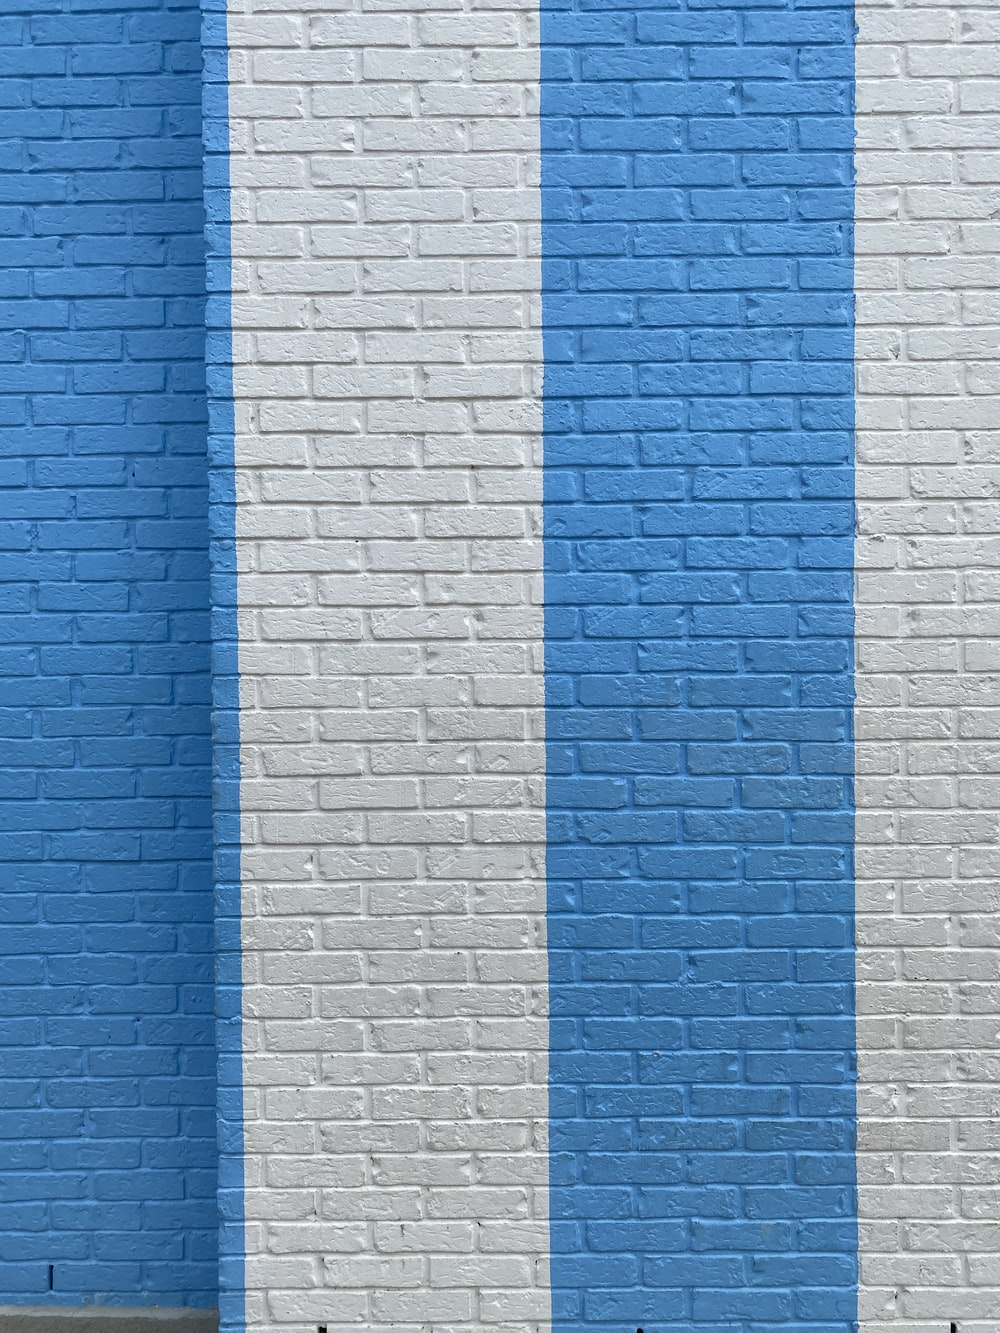 blue and white brick wall